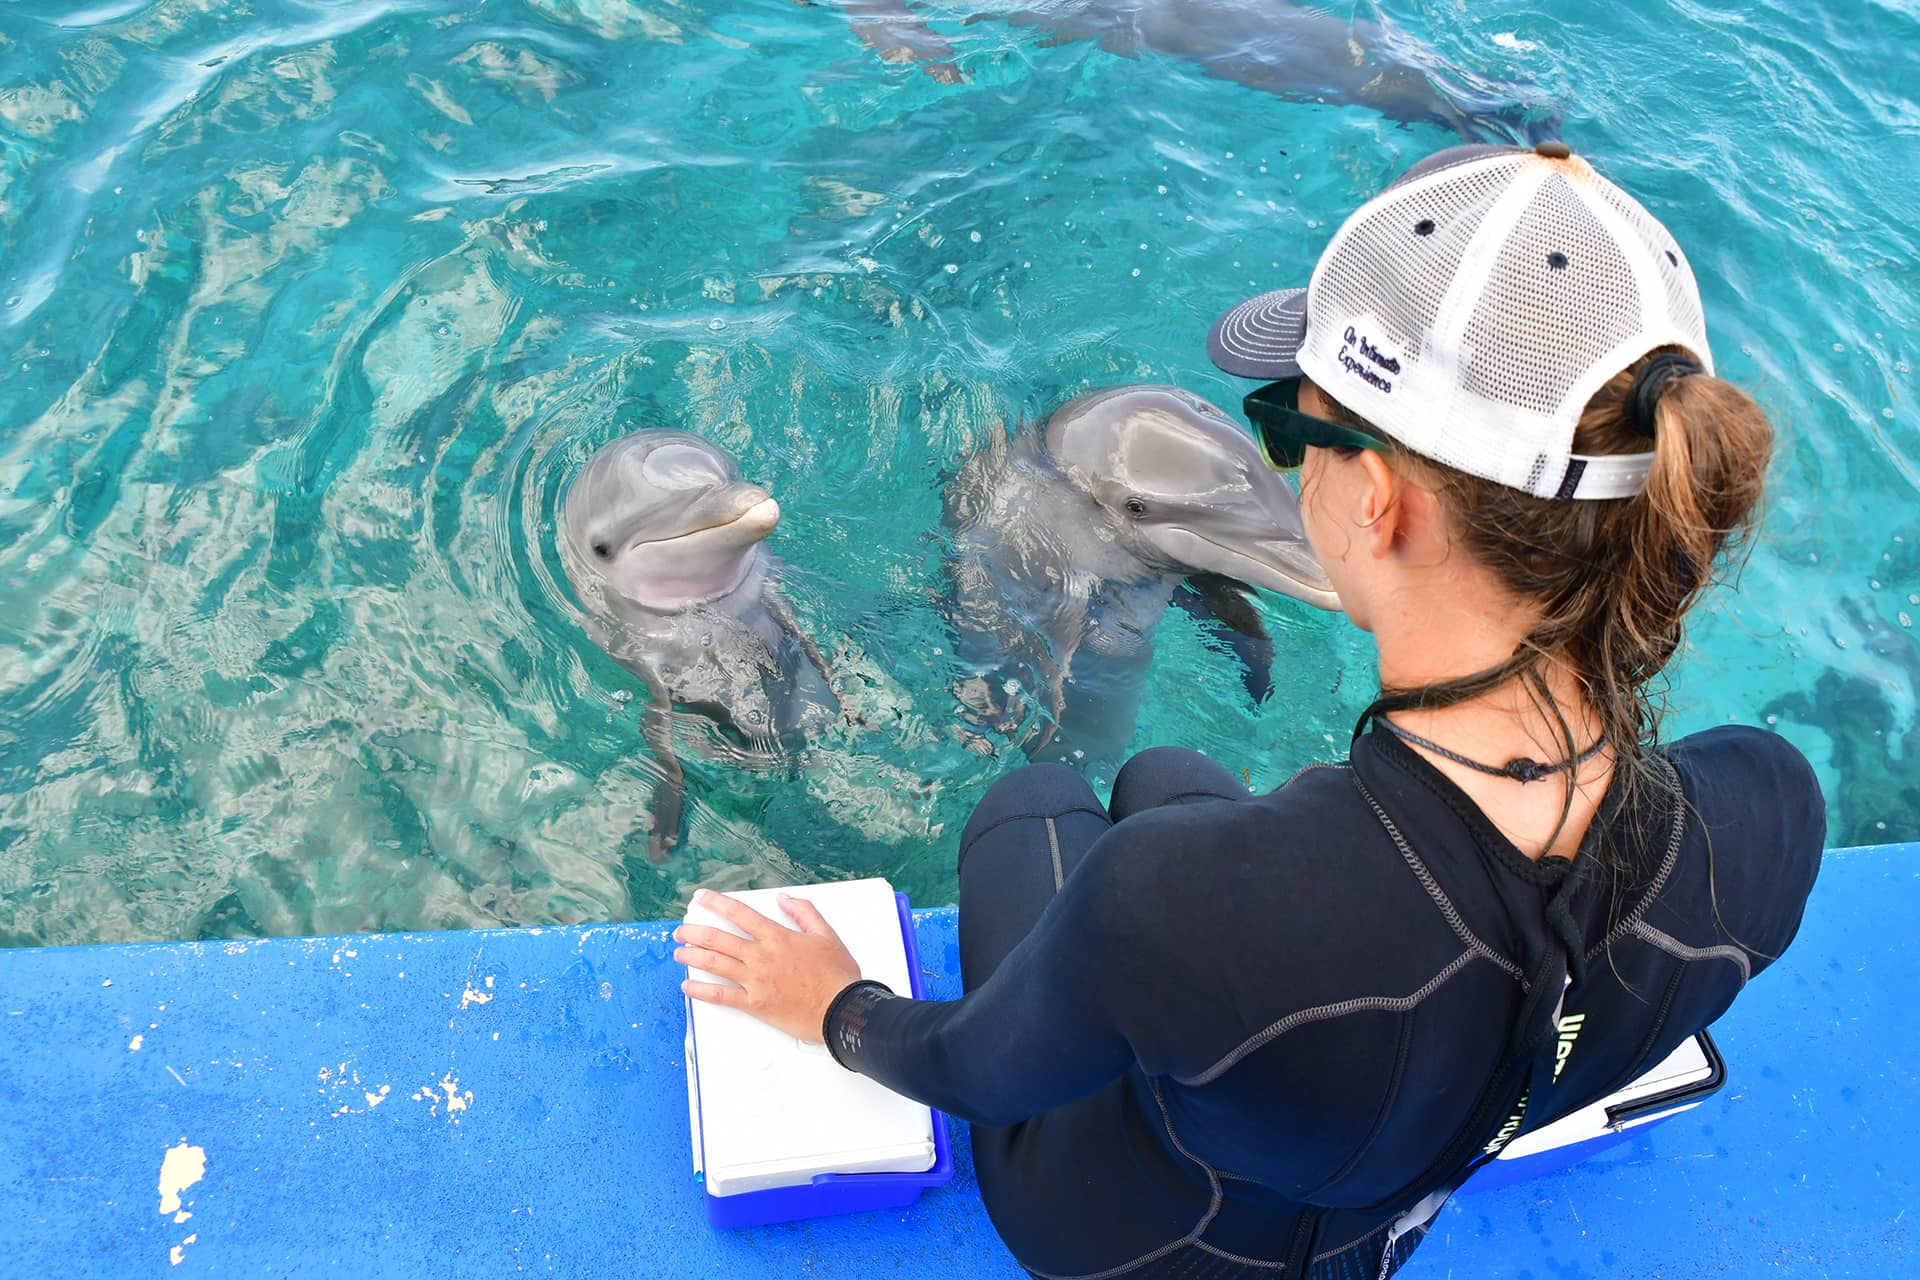 Trainer watching over two dolphins at the dolphin academy in Curaçao.